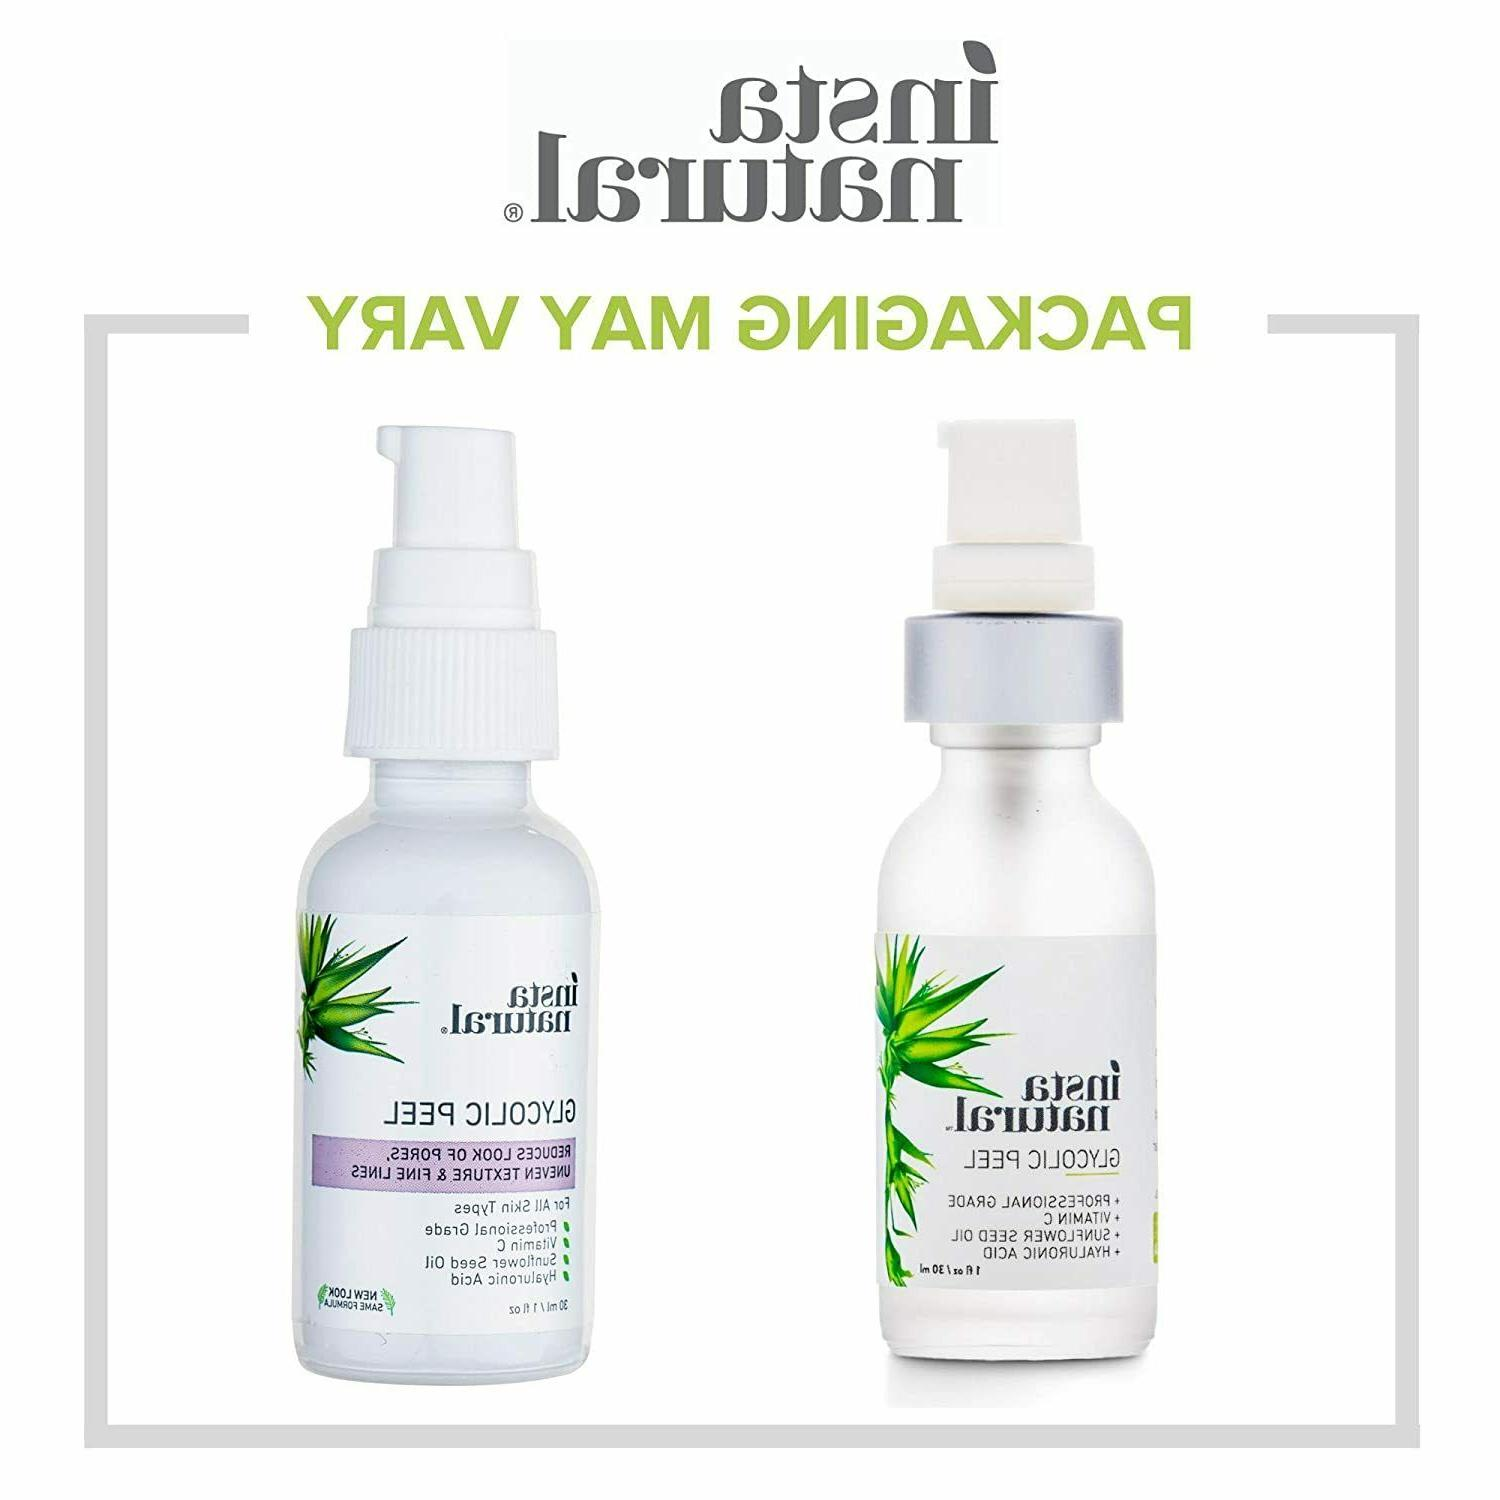 - With Vitamin Hyaluronic Treatment to